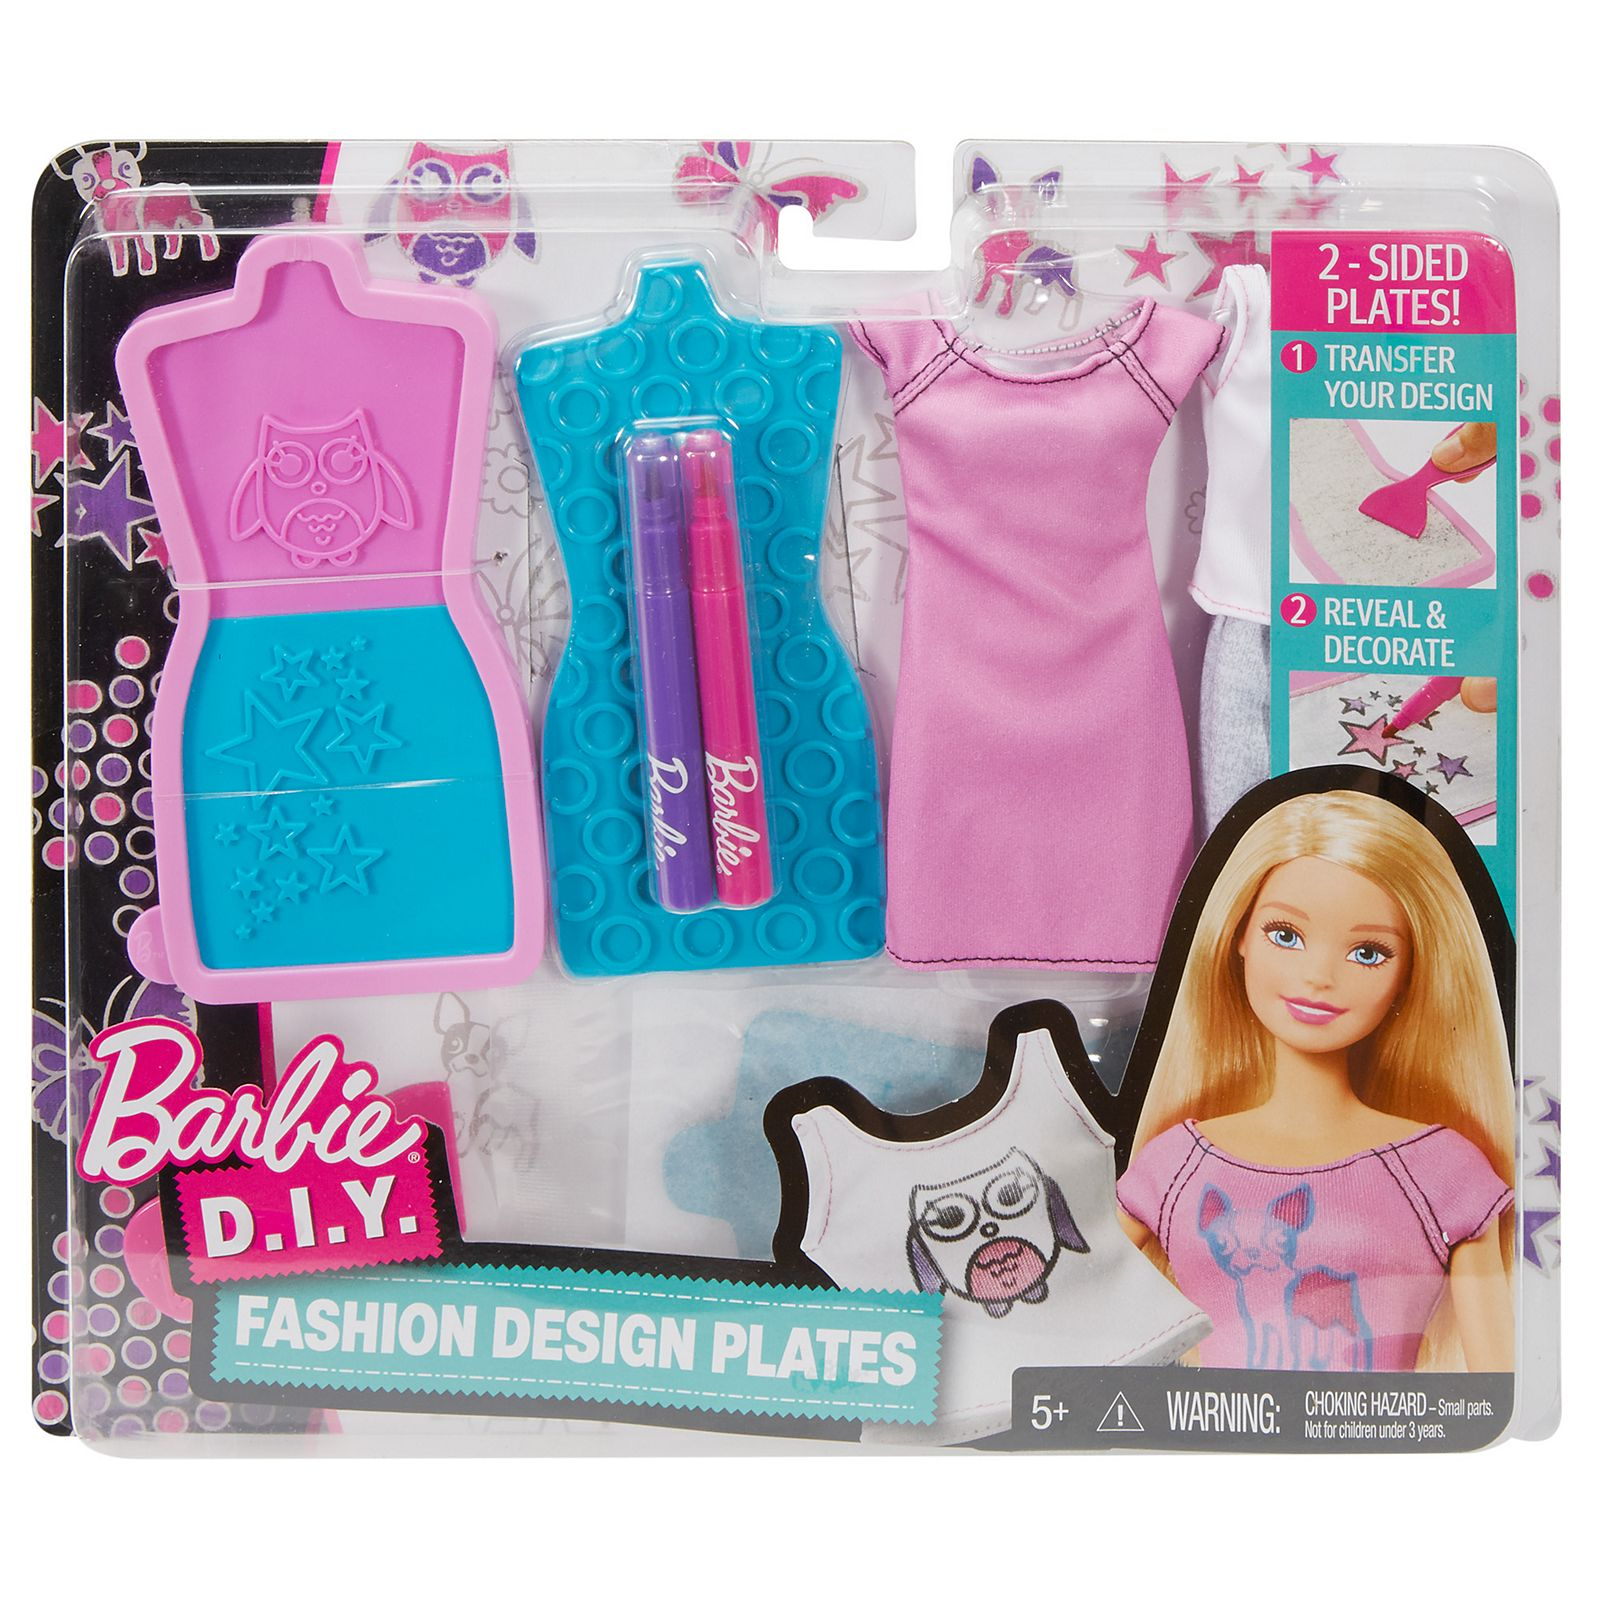 Barbie D I Y Fashion Design Plates Dyv67 Barbie